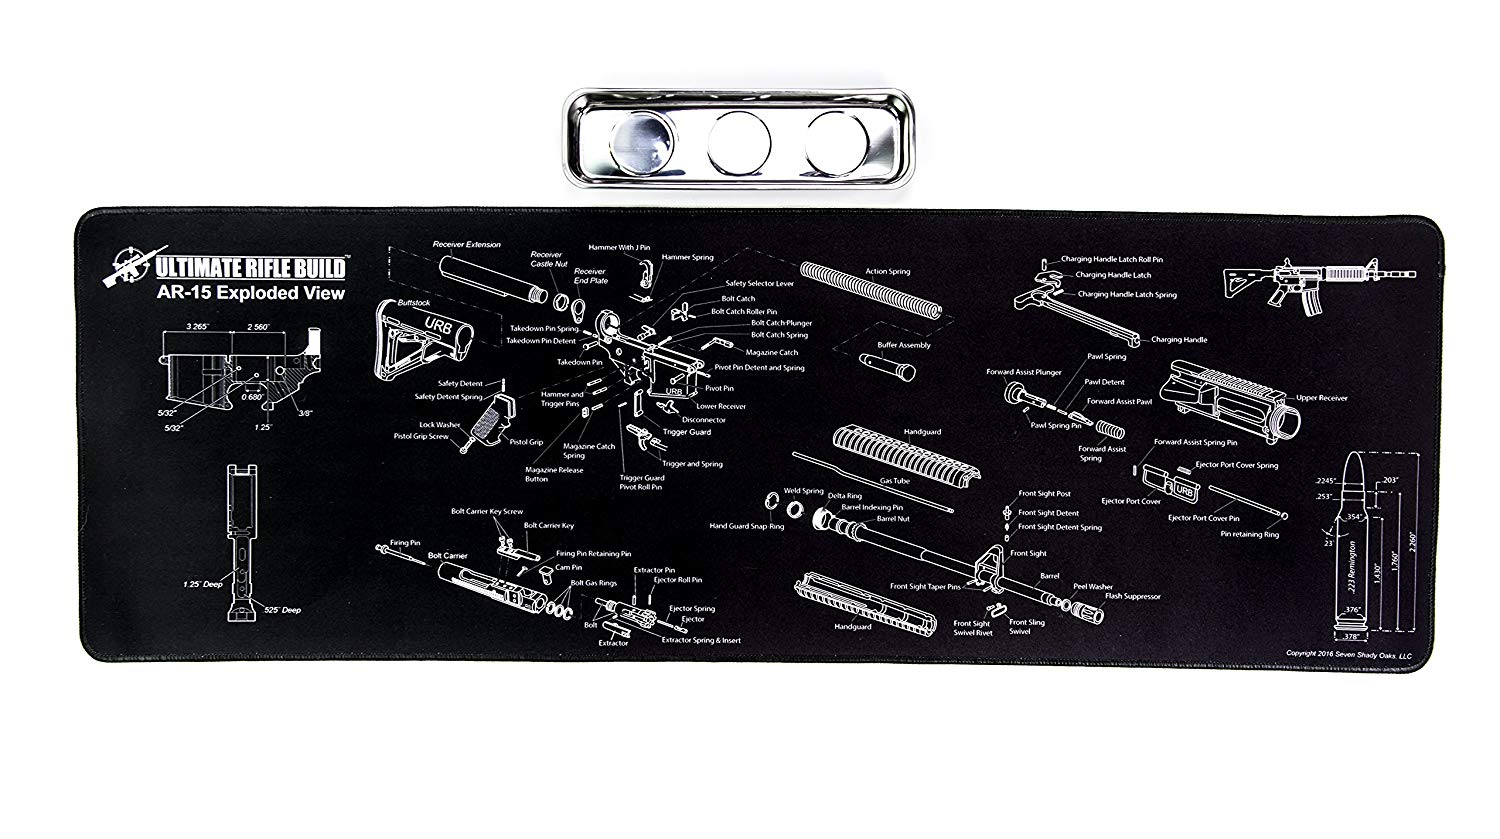 hight resolution of ar15 gun cleaning mat with exploded parts diagram bonus magnetic parts tray boxed for gift giving 19 95 free s h over 25